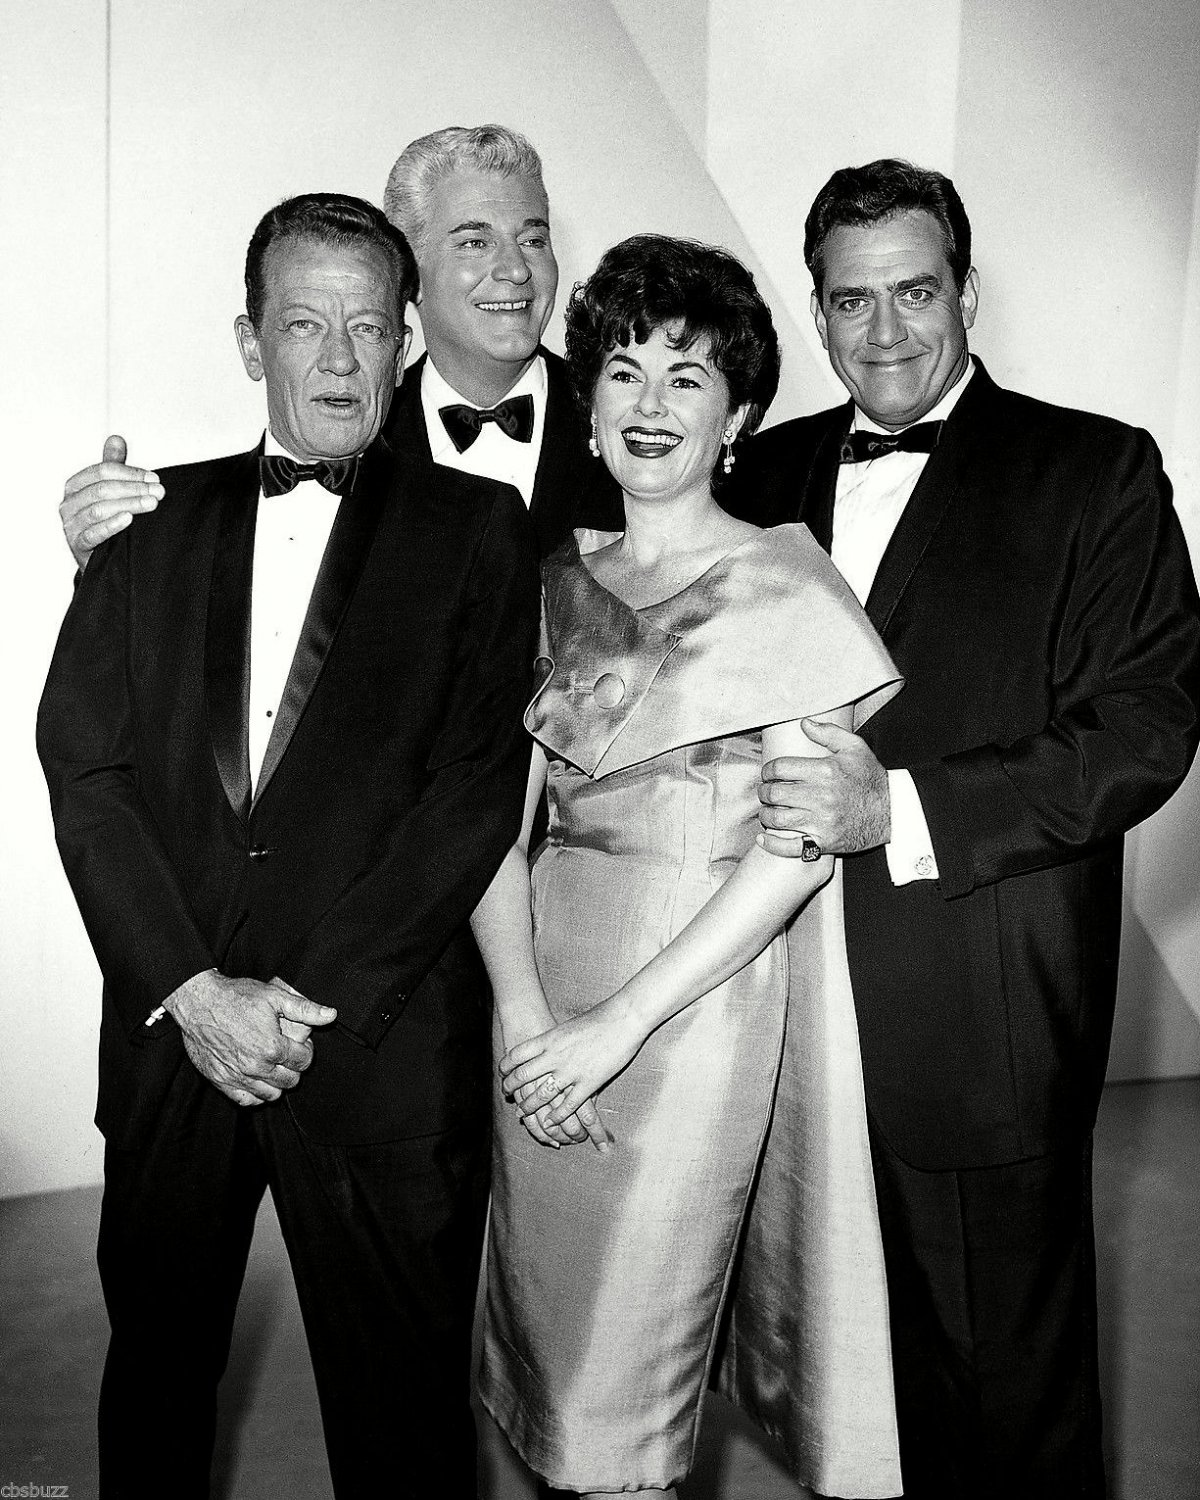 THE CAST OF THE TV SERIES 'PERRY MASON' - 8X10 PUBLICITY PHOTO (NN-140)